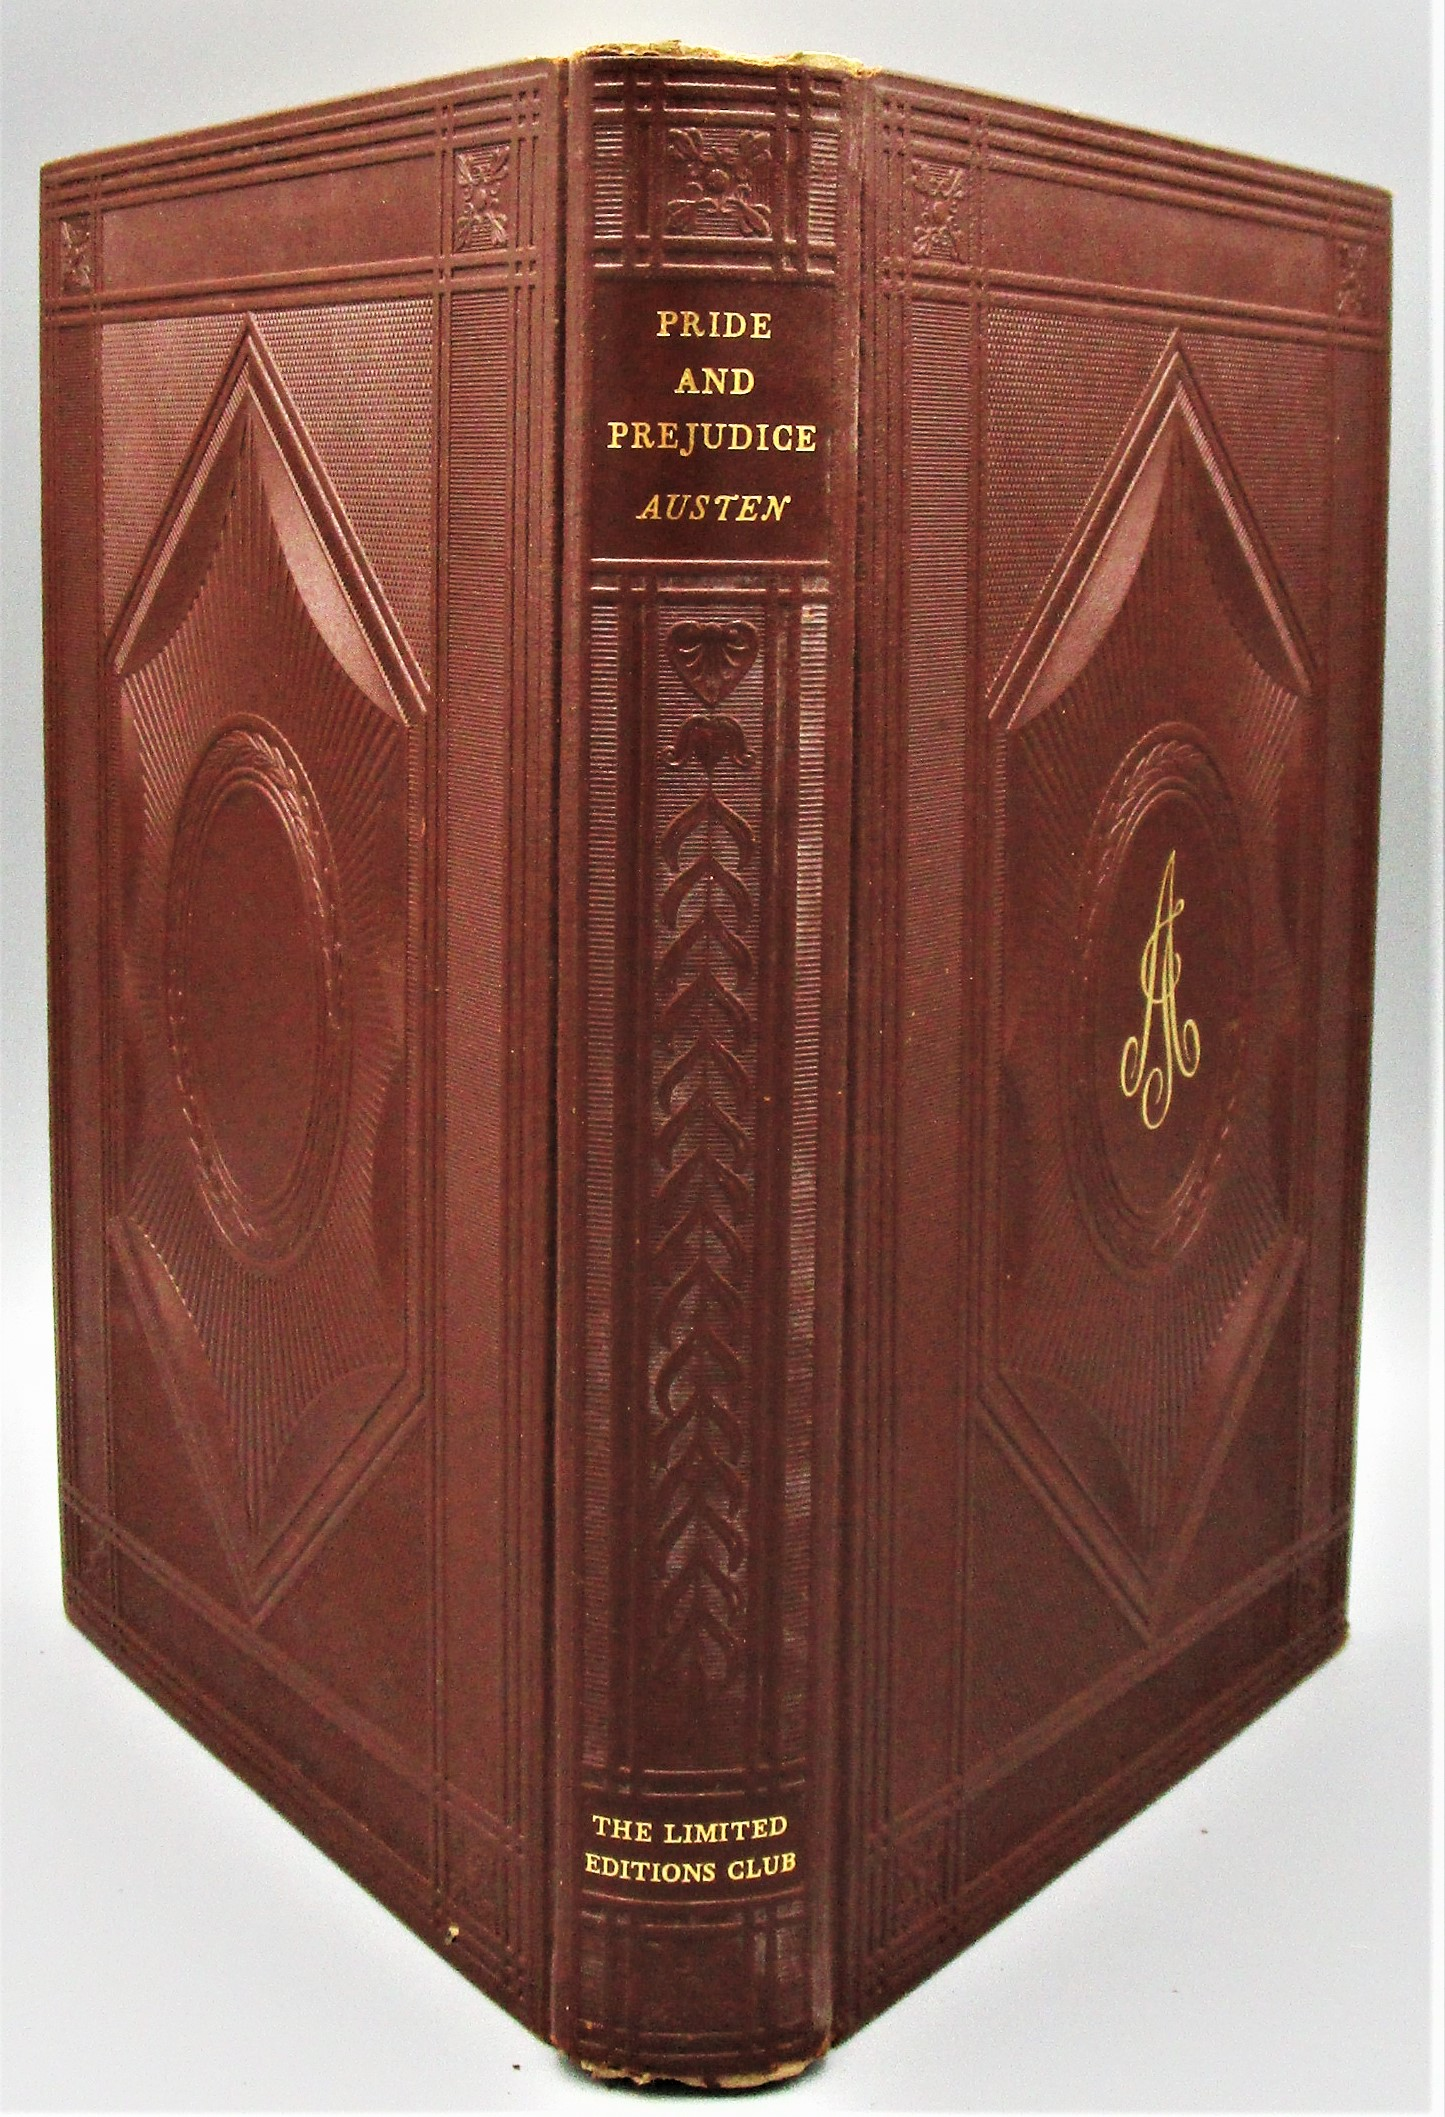 PRIDE & PREJUDICE, by Jane Austen; Helen Sewell - 1940 [Illustr-Signed Ltd Ed]